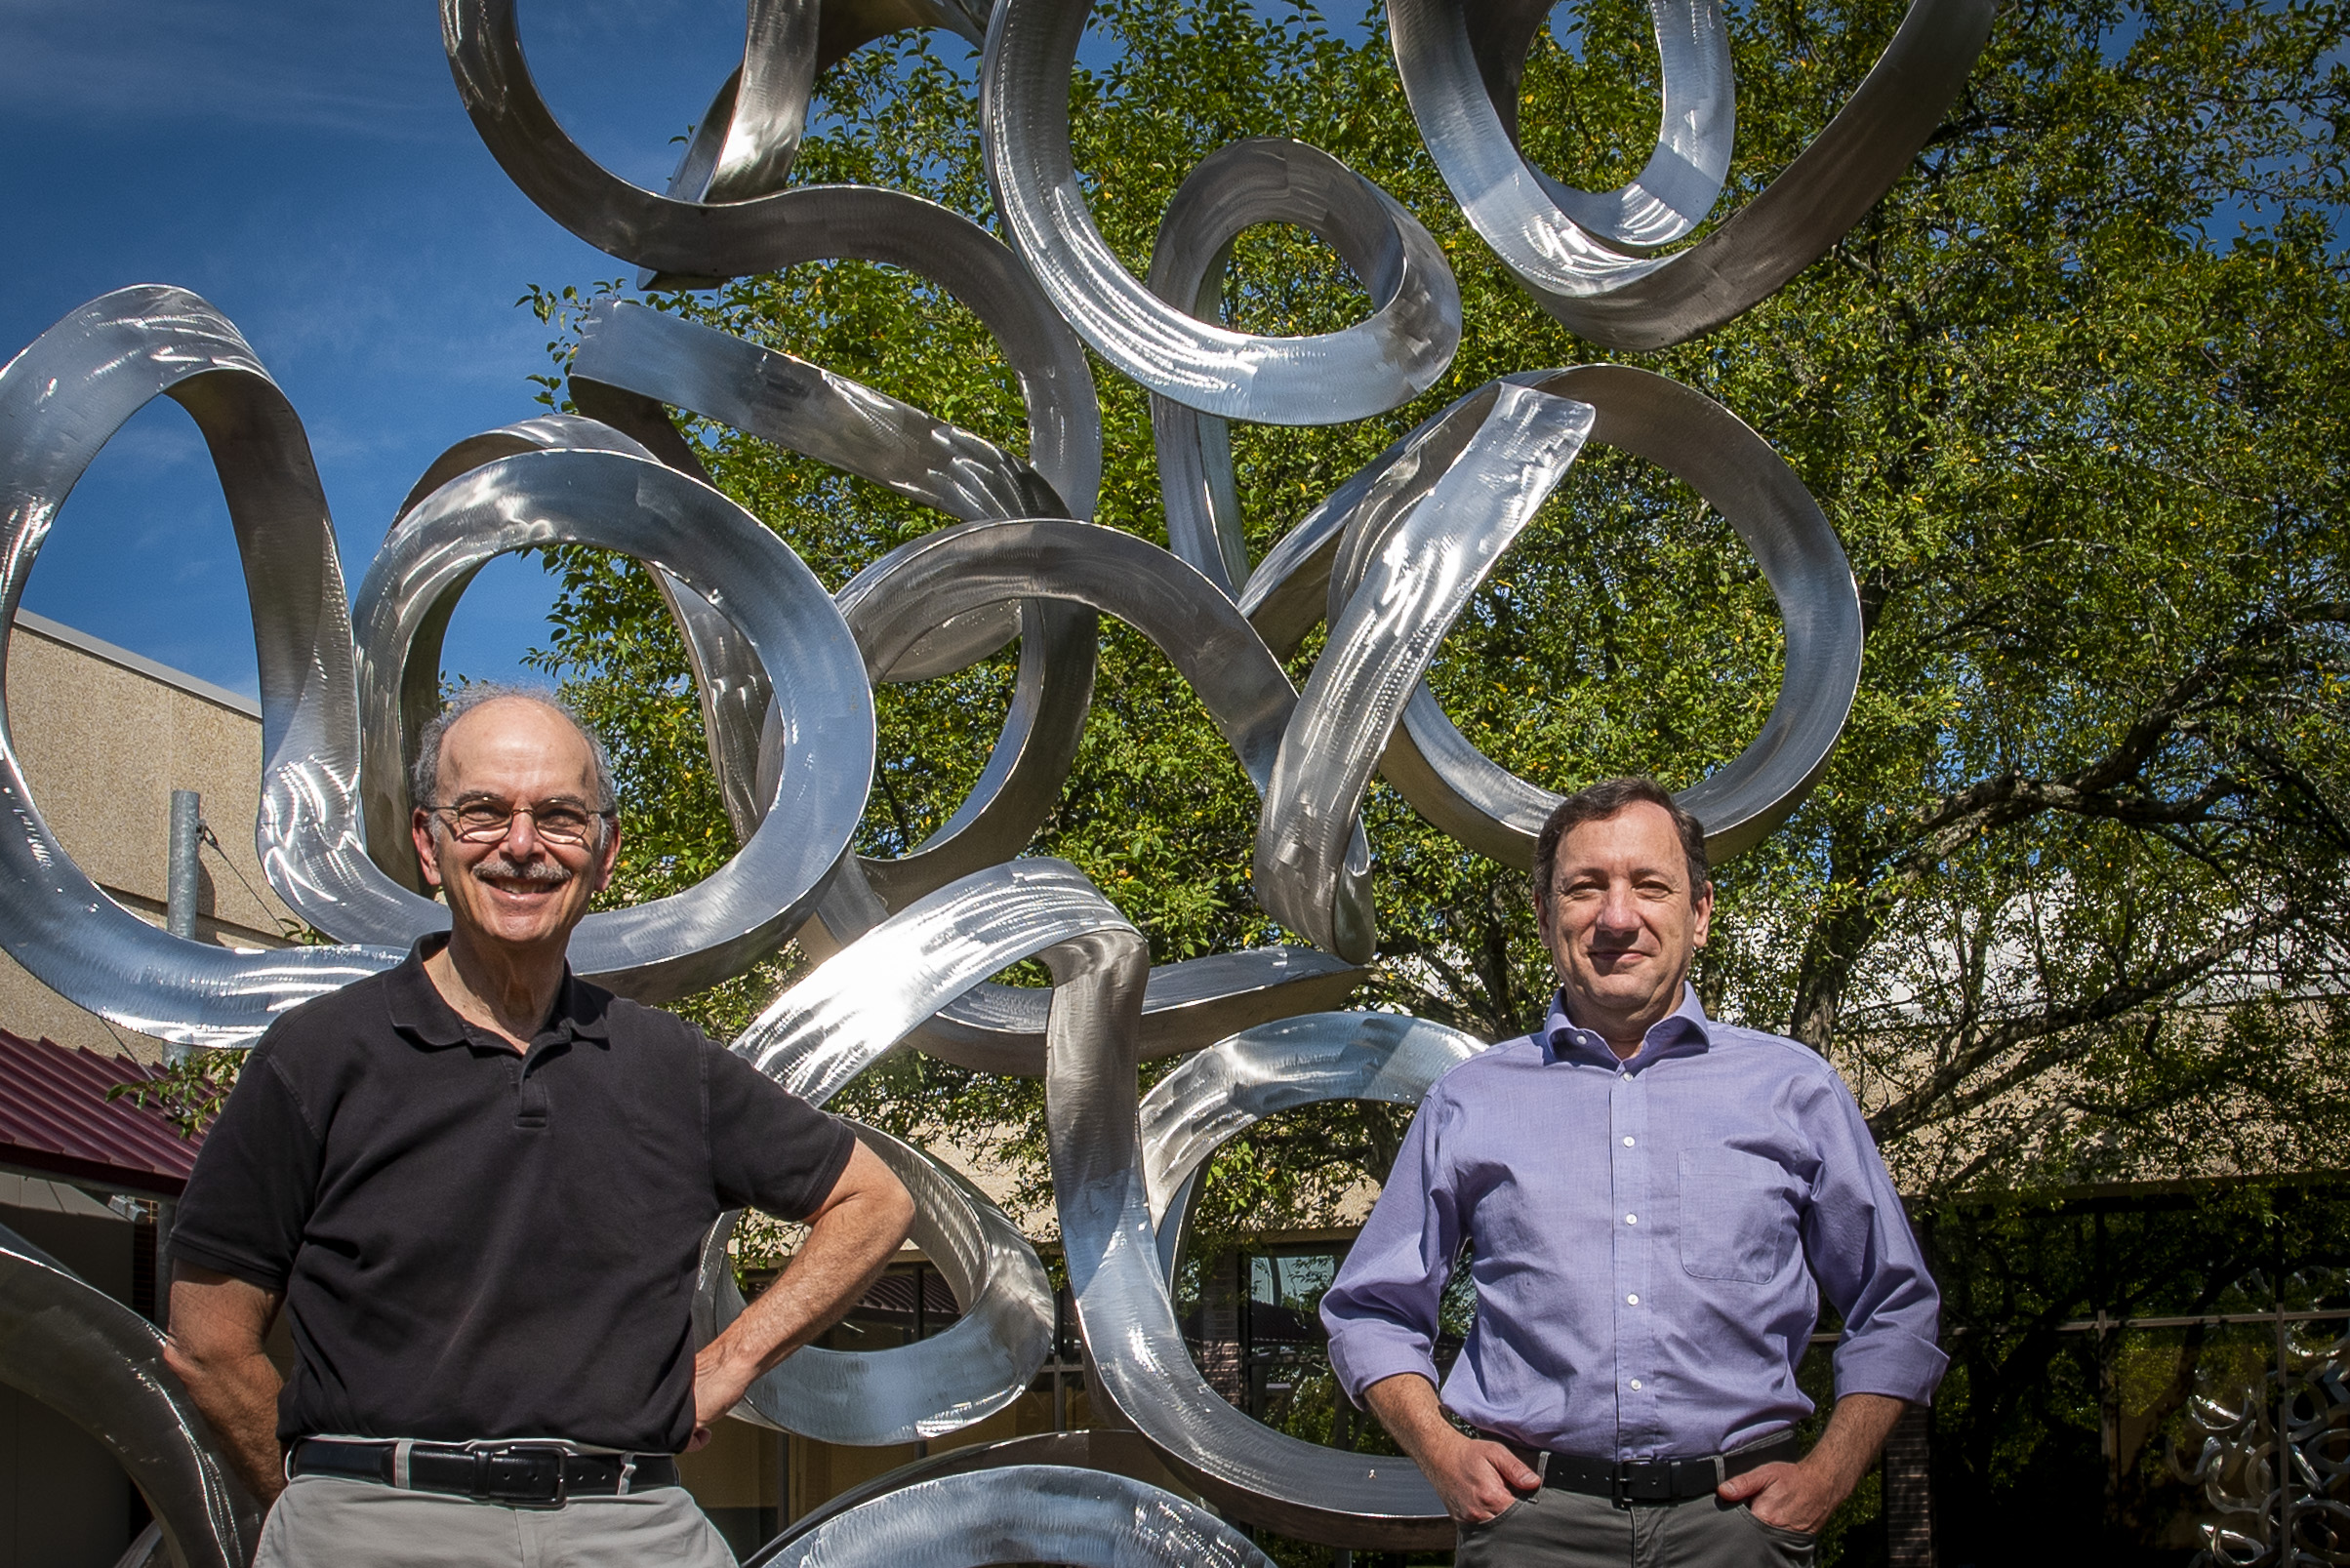 Researchers Les Loew, left, and Pedro Mendes outside the Cell and Genome building at UConn Health in Farmington on July 13, 2020.